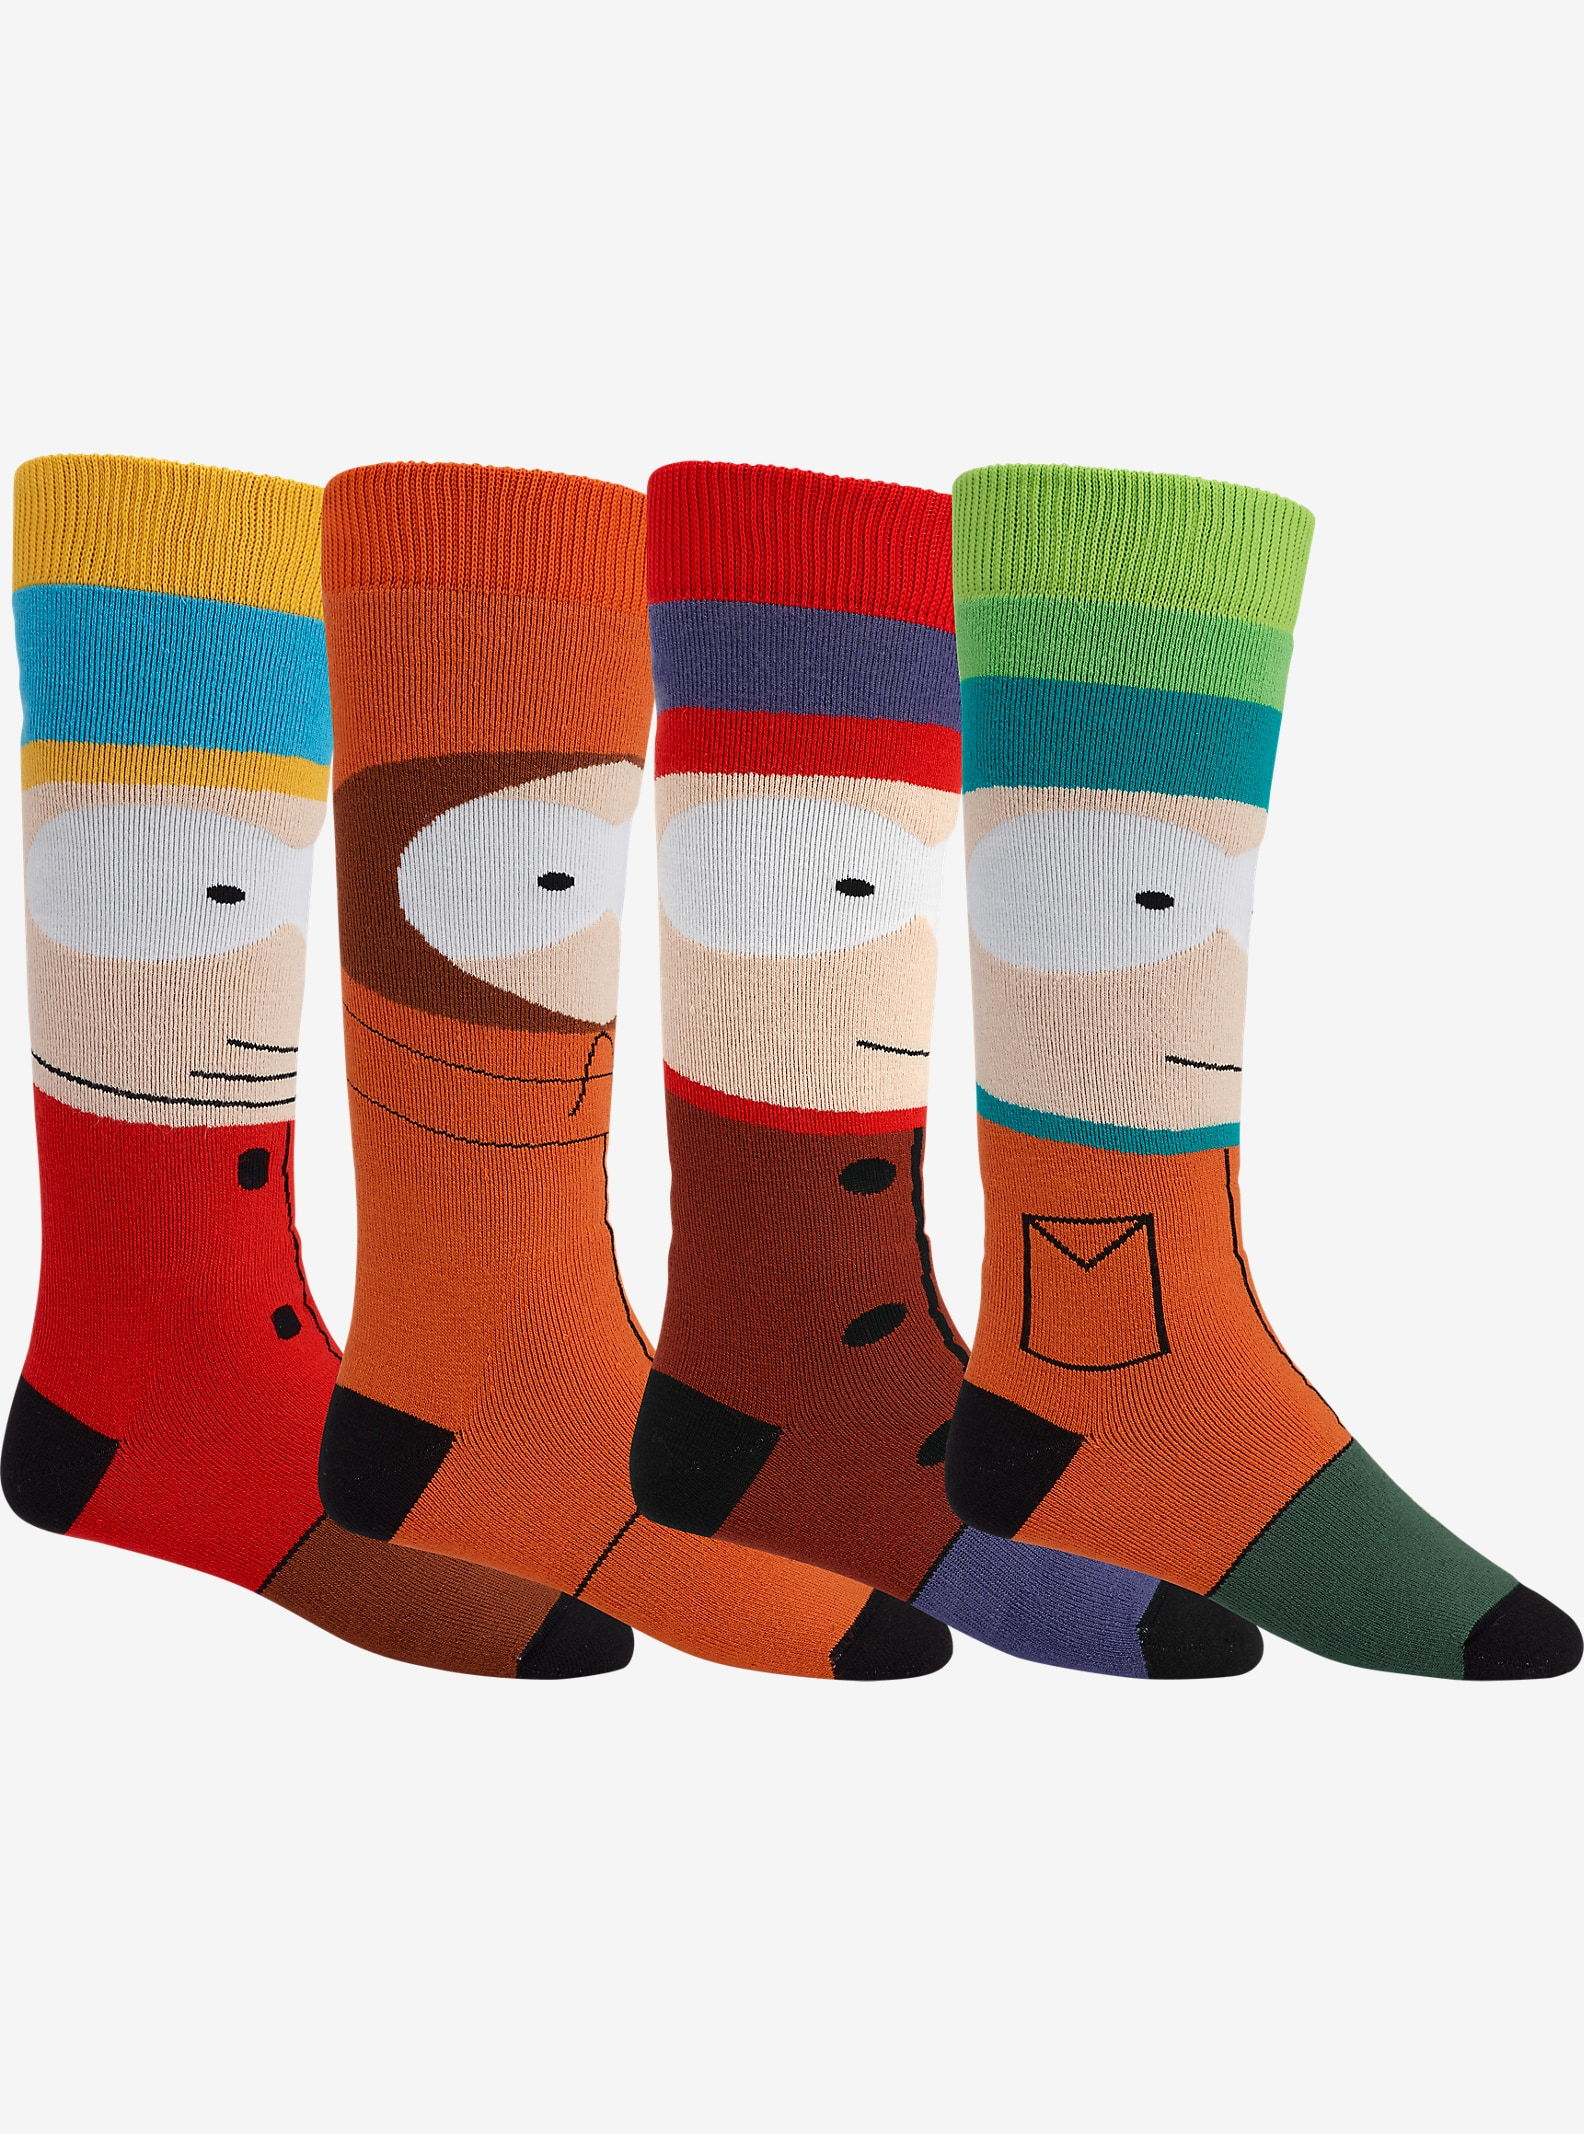 Burton x South Park Weekend Sock Two-Pack shown in South Park